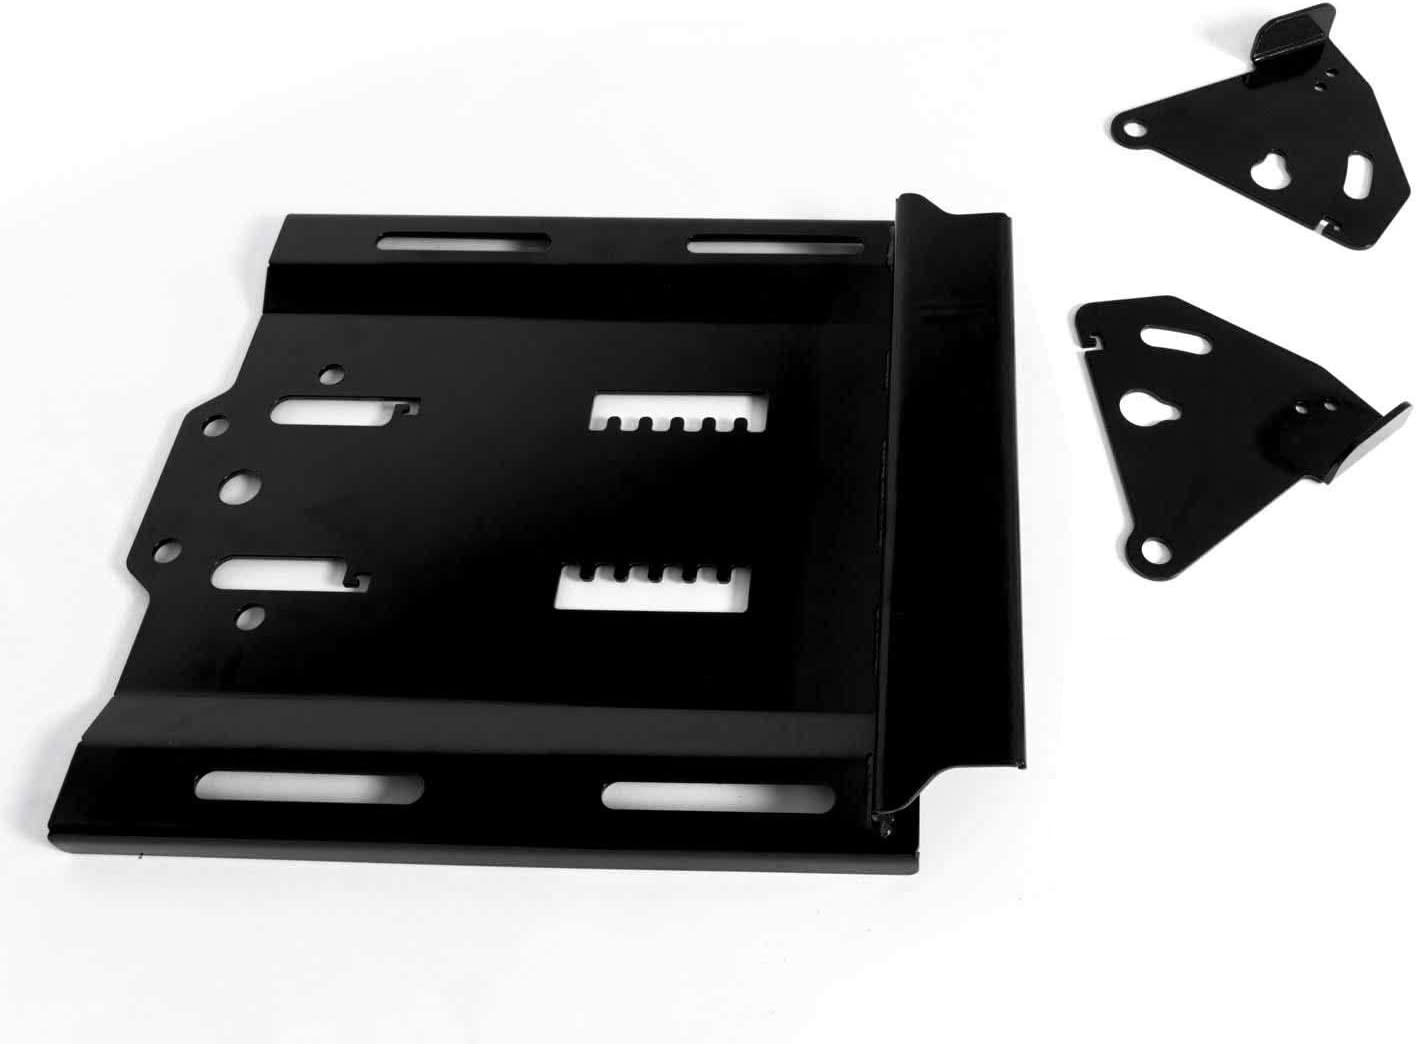 "4 Seat 2016+ SuperATV Seat Lowering Base for Polaris RZR XP Turbo//XP Turbo S Lowers Seat by 1.5/"" with Front to Back Adjustability"